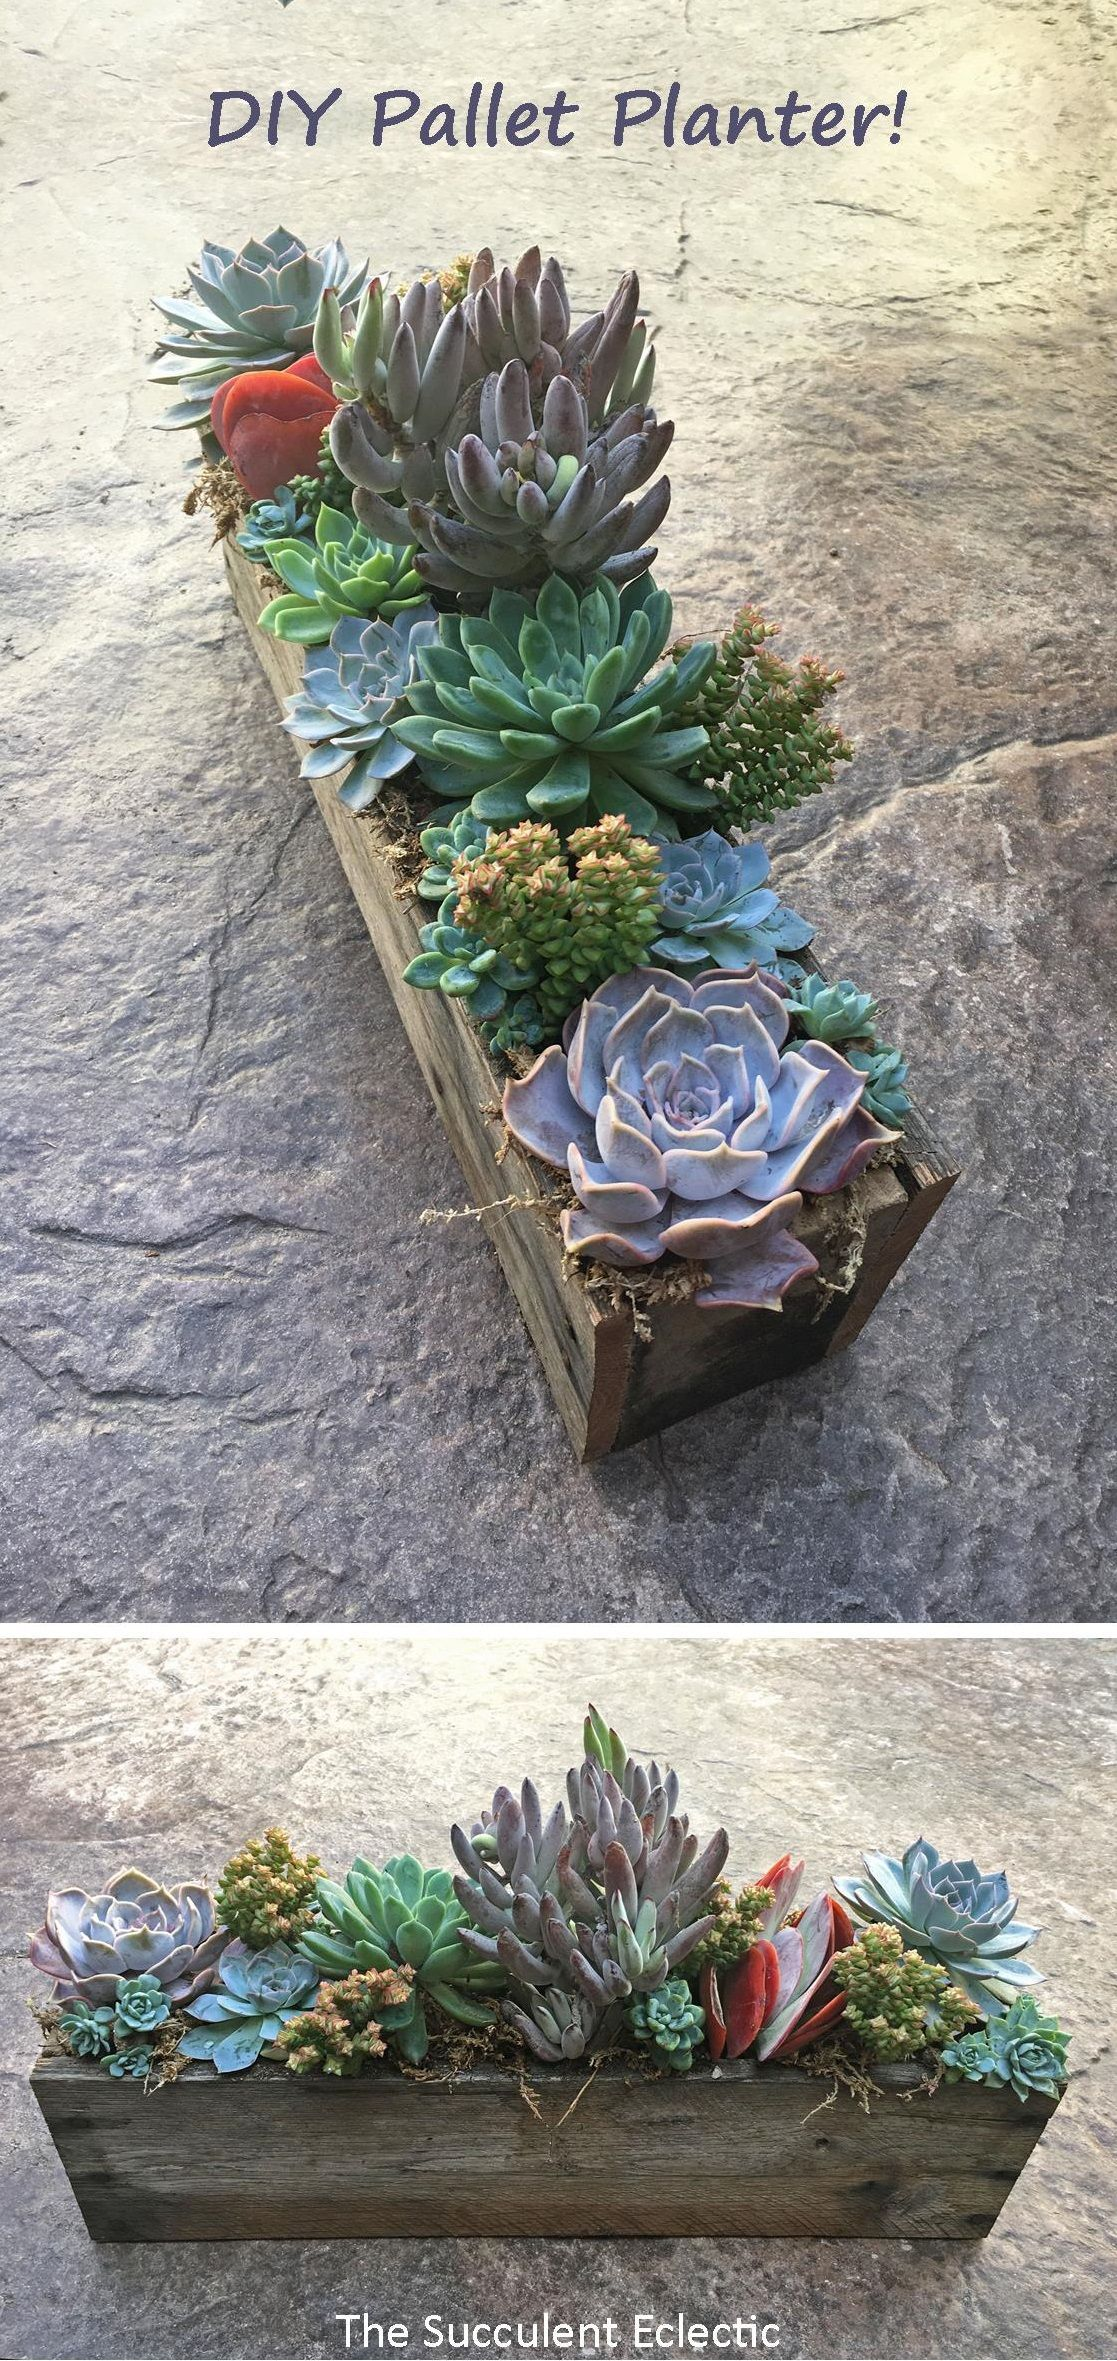 DIY Pallet Planter filled with succulents  stepbystep tutorial to make this cool succulent planter Pin now read later  and Enjoy